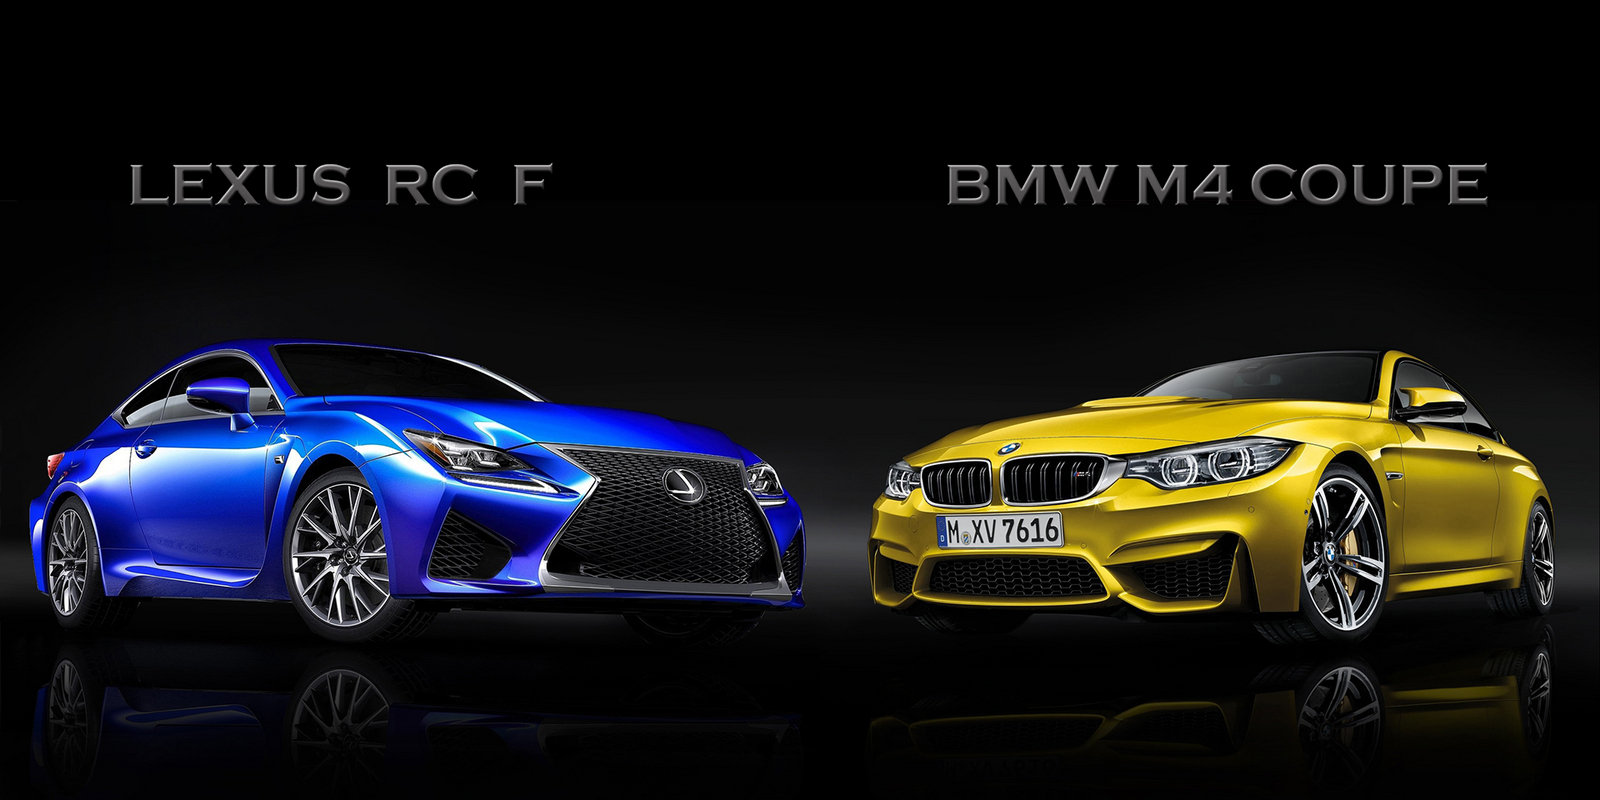 2015 lexus rc f vs bmw m4 coupe news gallery top speed. Black Bedroom Furniture Sets. Home Design Ideas